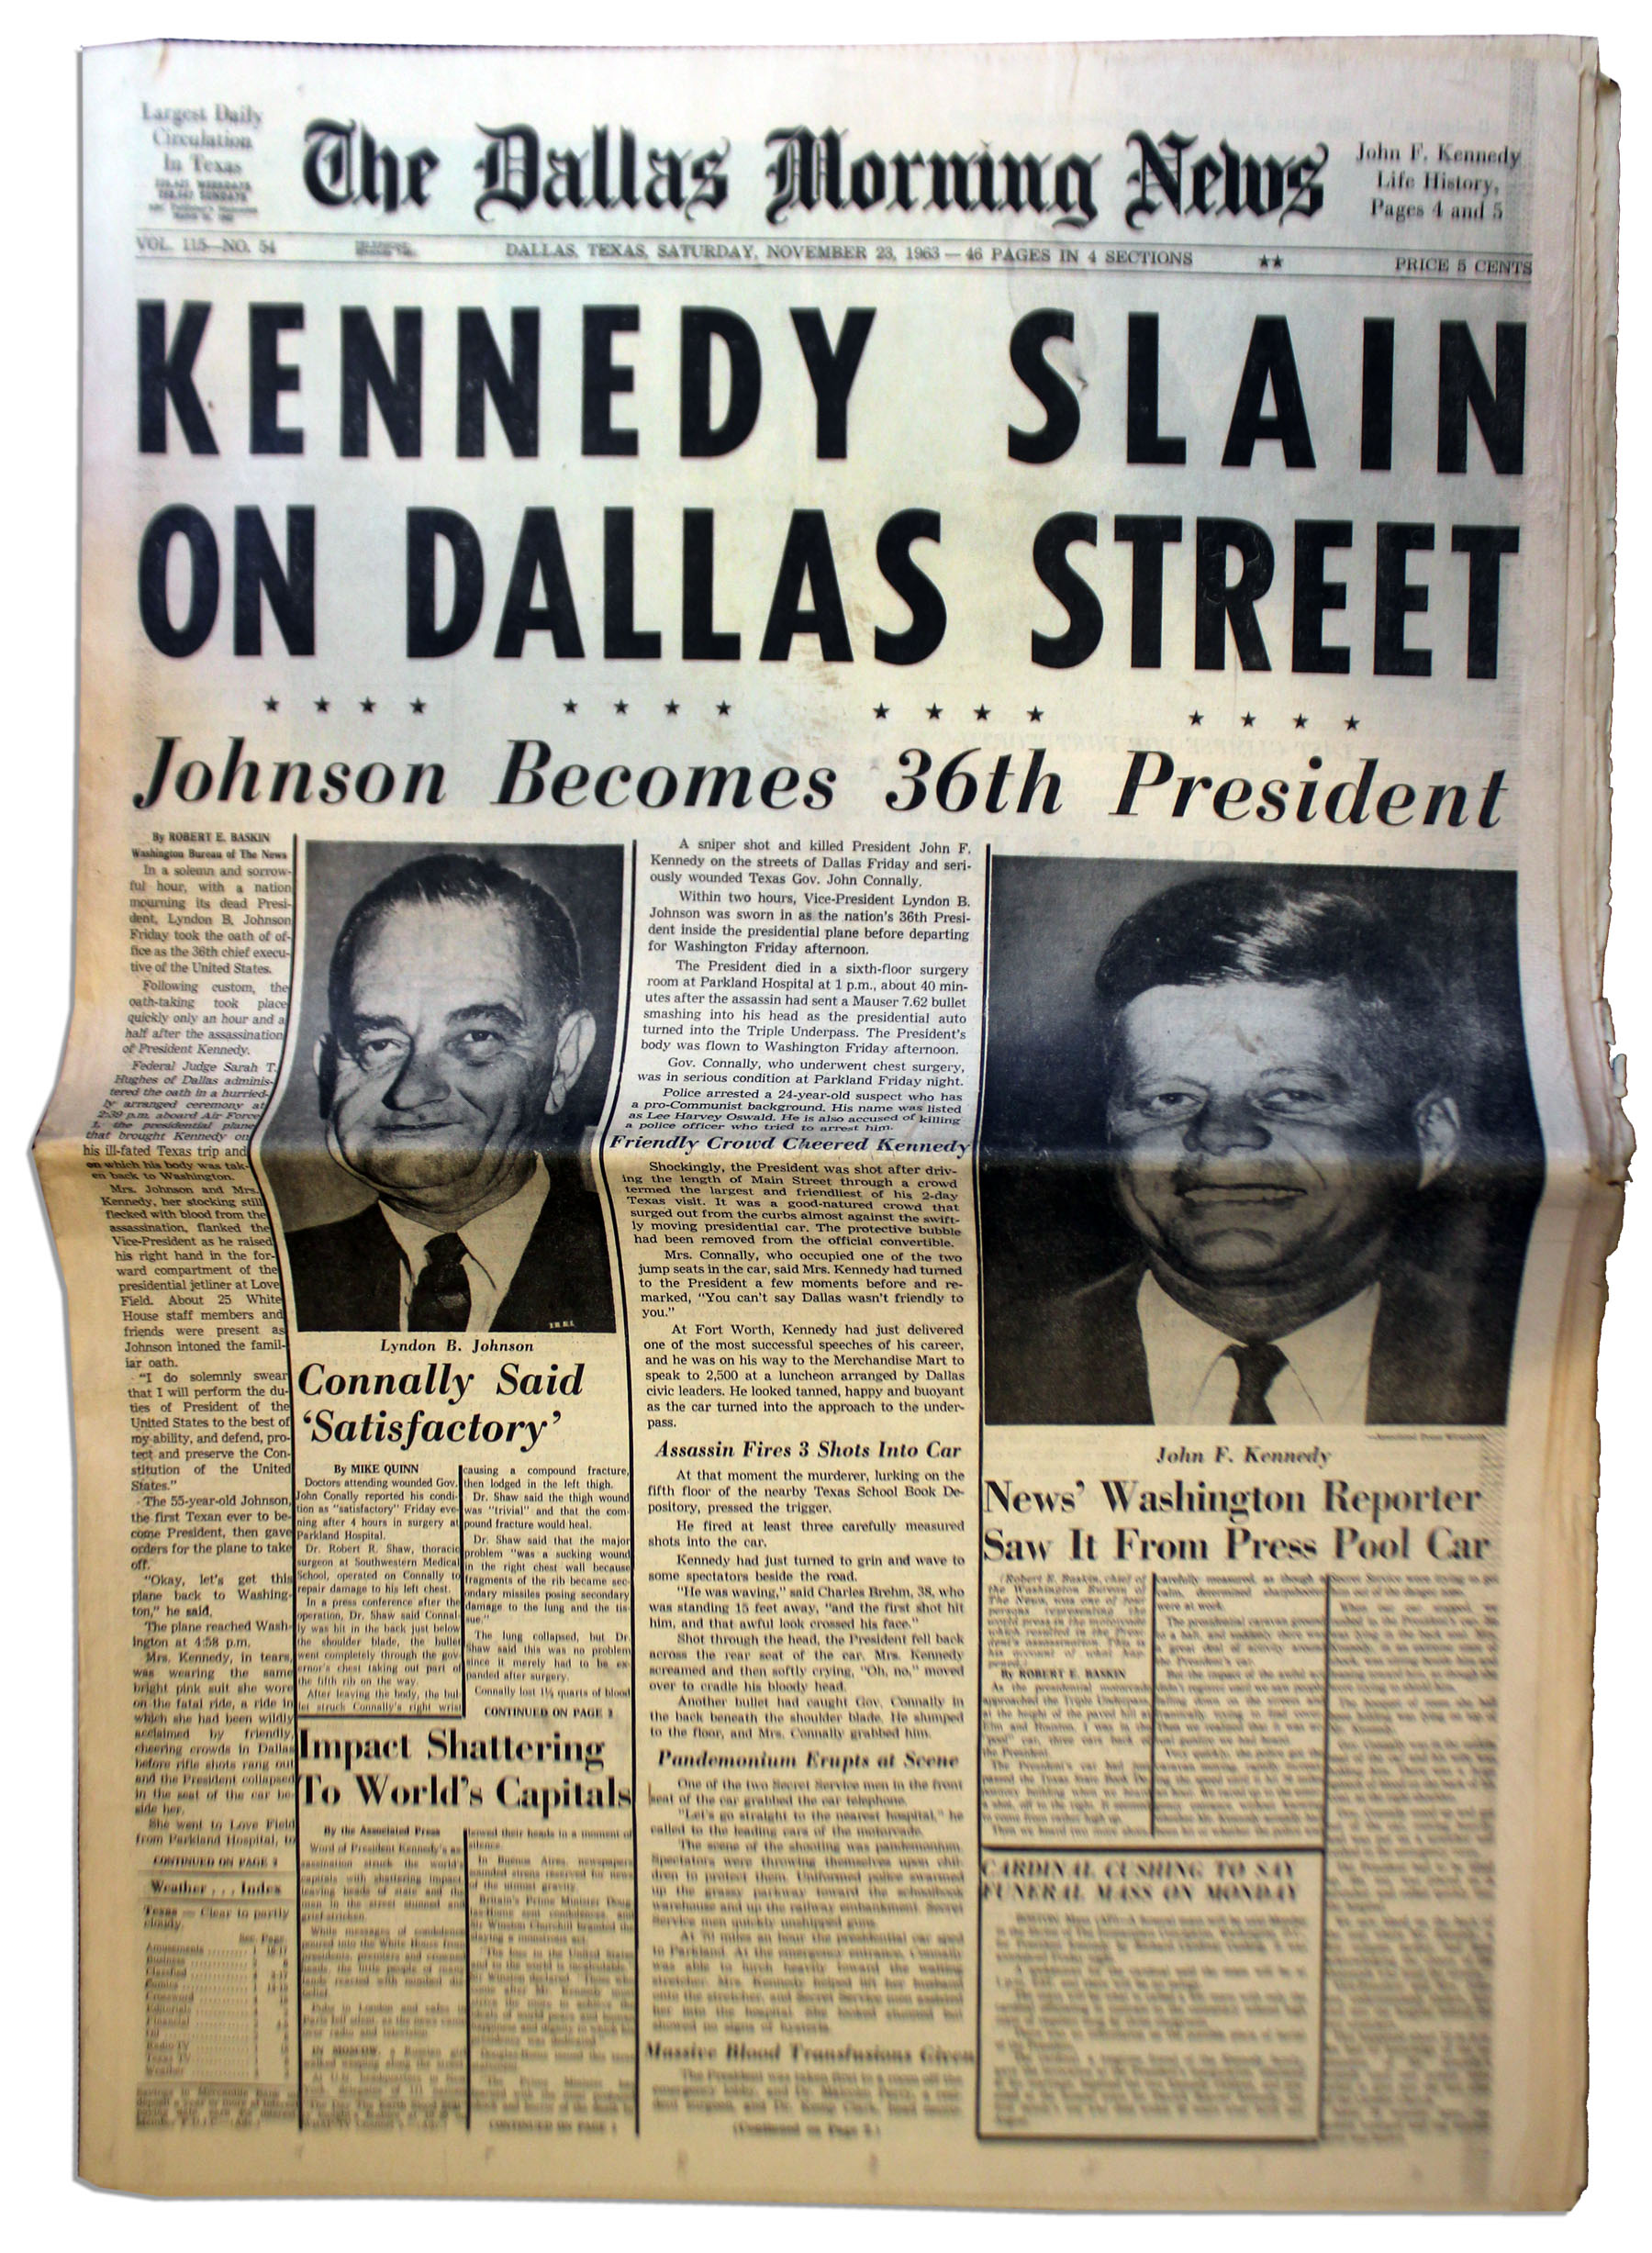 jfk assasination essay The assassination of john f kennedy is one of the most controversial and debated topics in american history jfk was one of the most beloved presidents of our time.